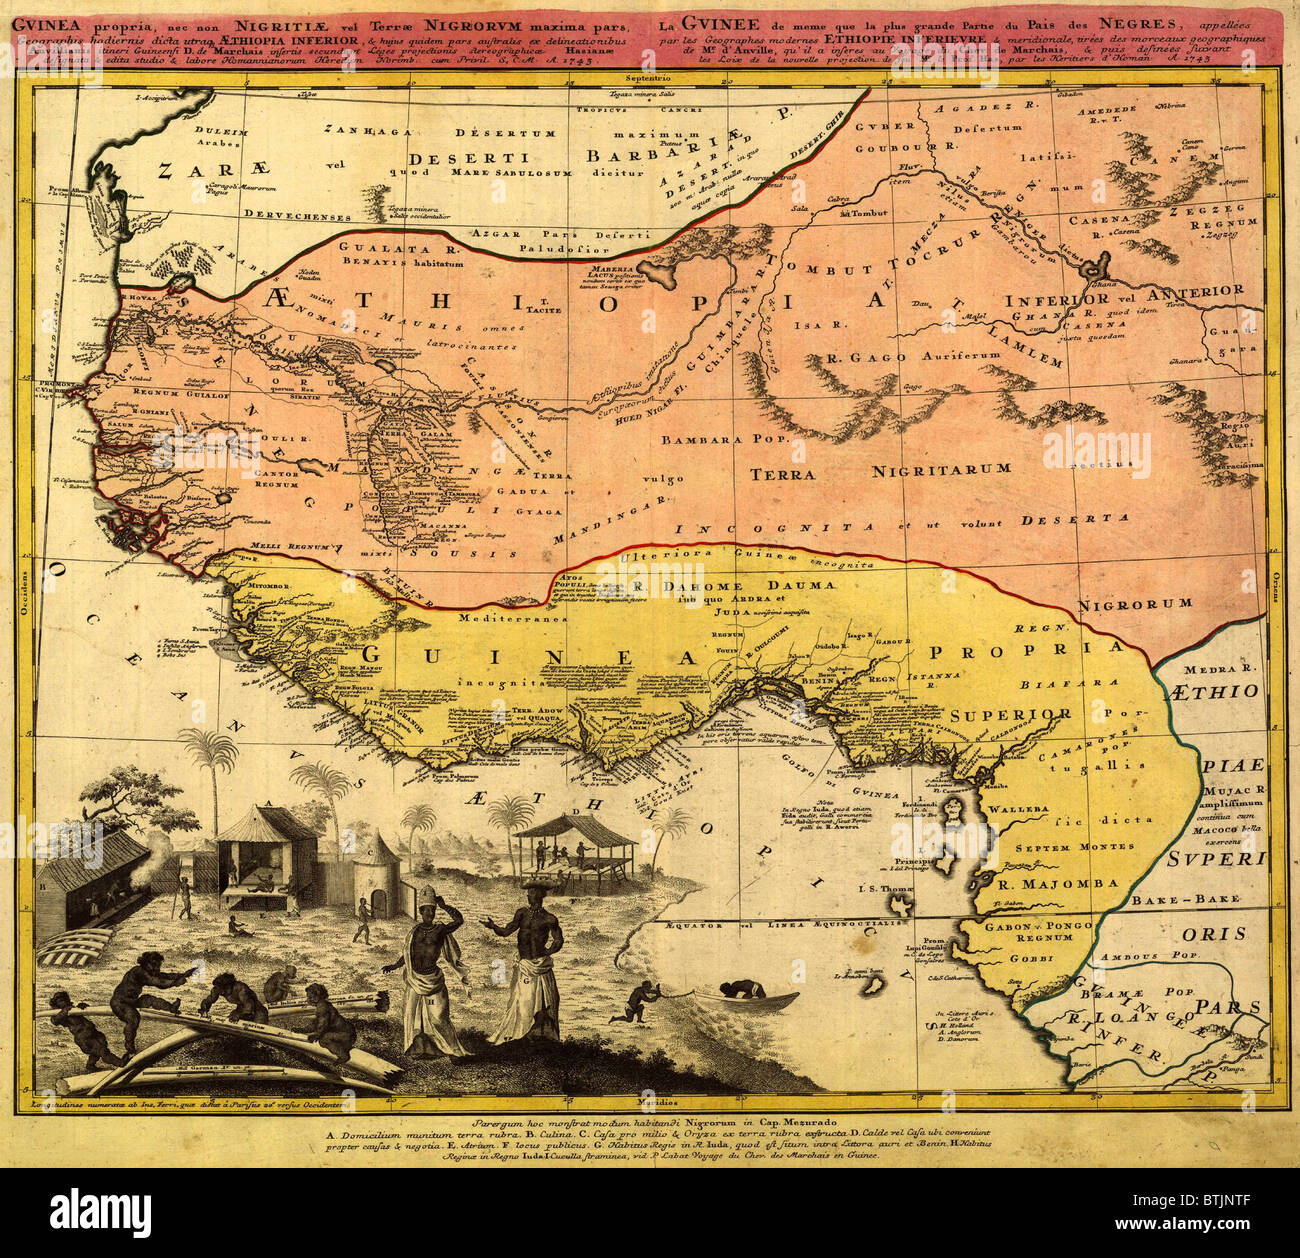 Picture of: 1743 Map Of West Coast Of Africa Where Slave Trade Thrived Ignoring Stock Photo Alamy